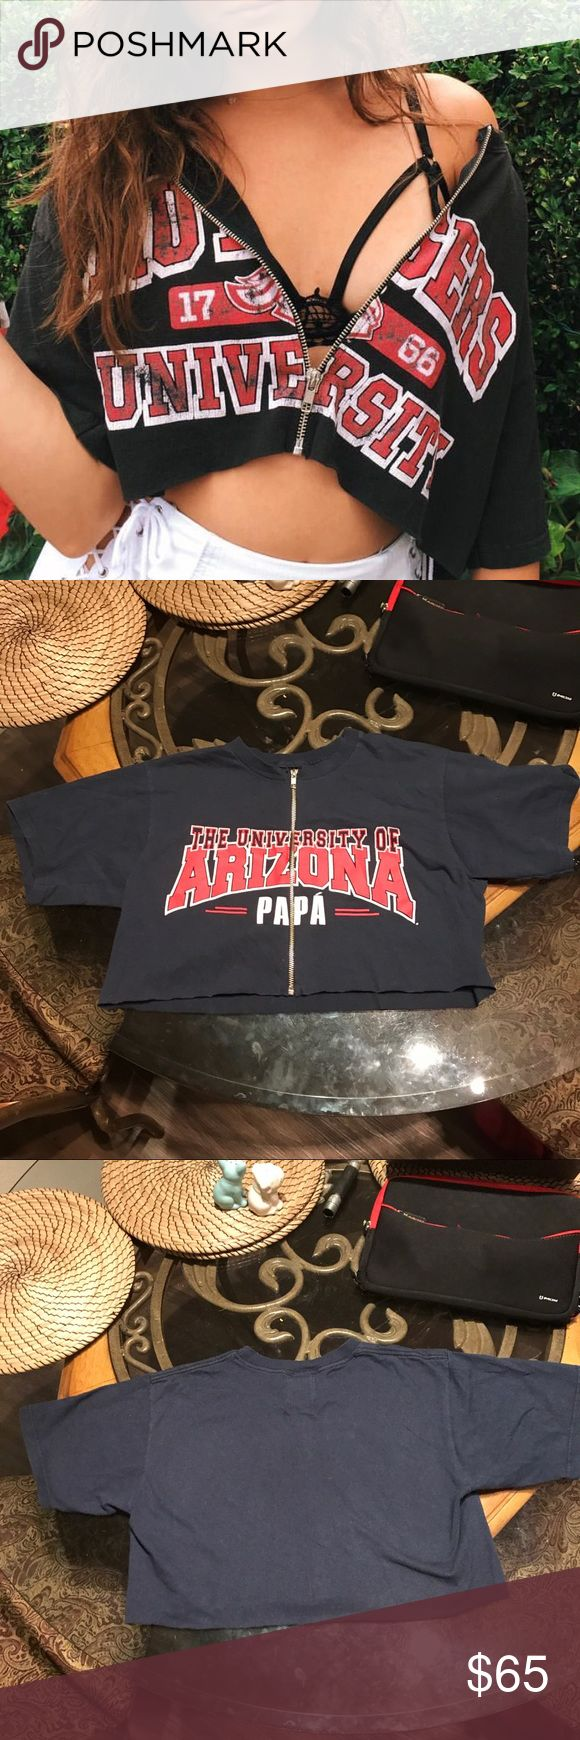 Lf furst of a kind vintage tee LF furst of a kind vintage tee. University of Arizona with zip up design in the middle. Navy blue with red and white writing. One size posted as small because it's pretty cropped (: LF Tops Crop Tops